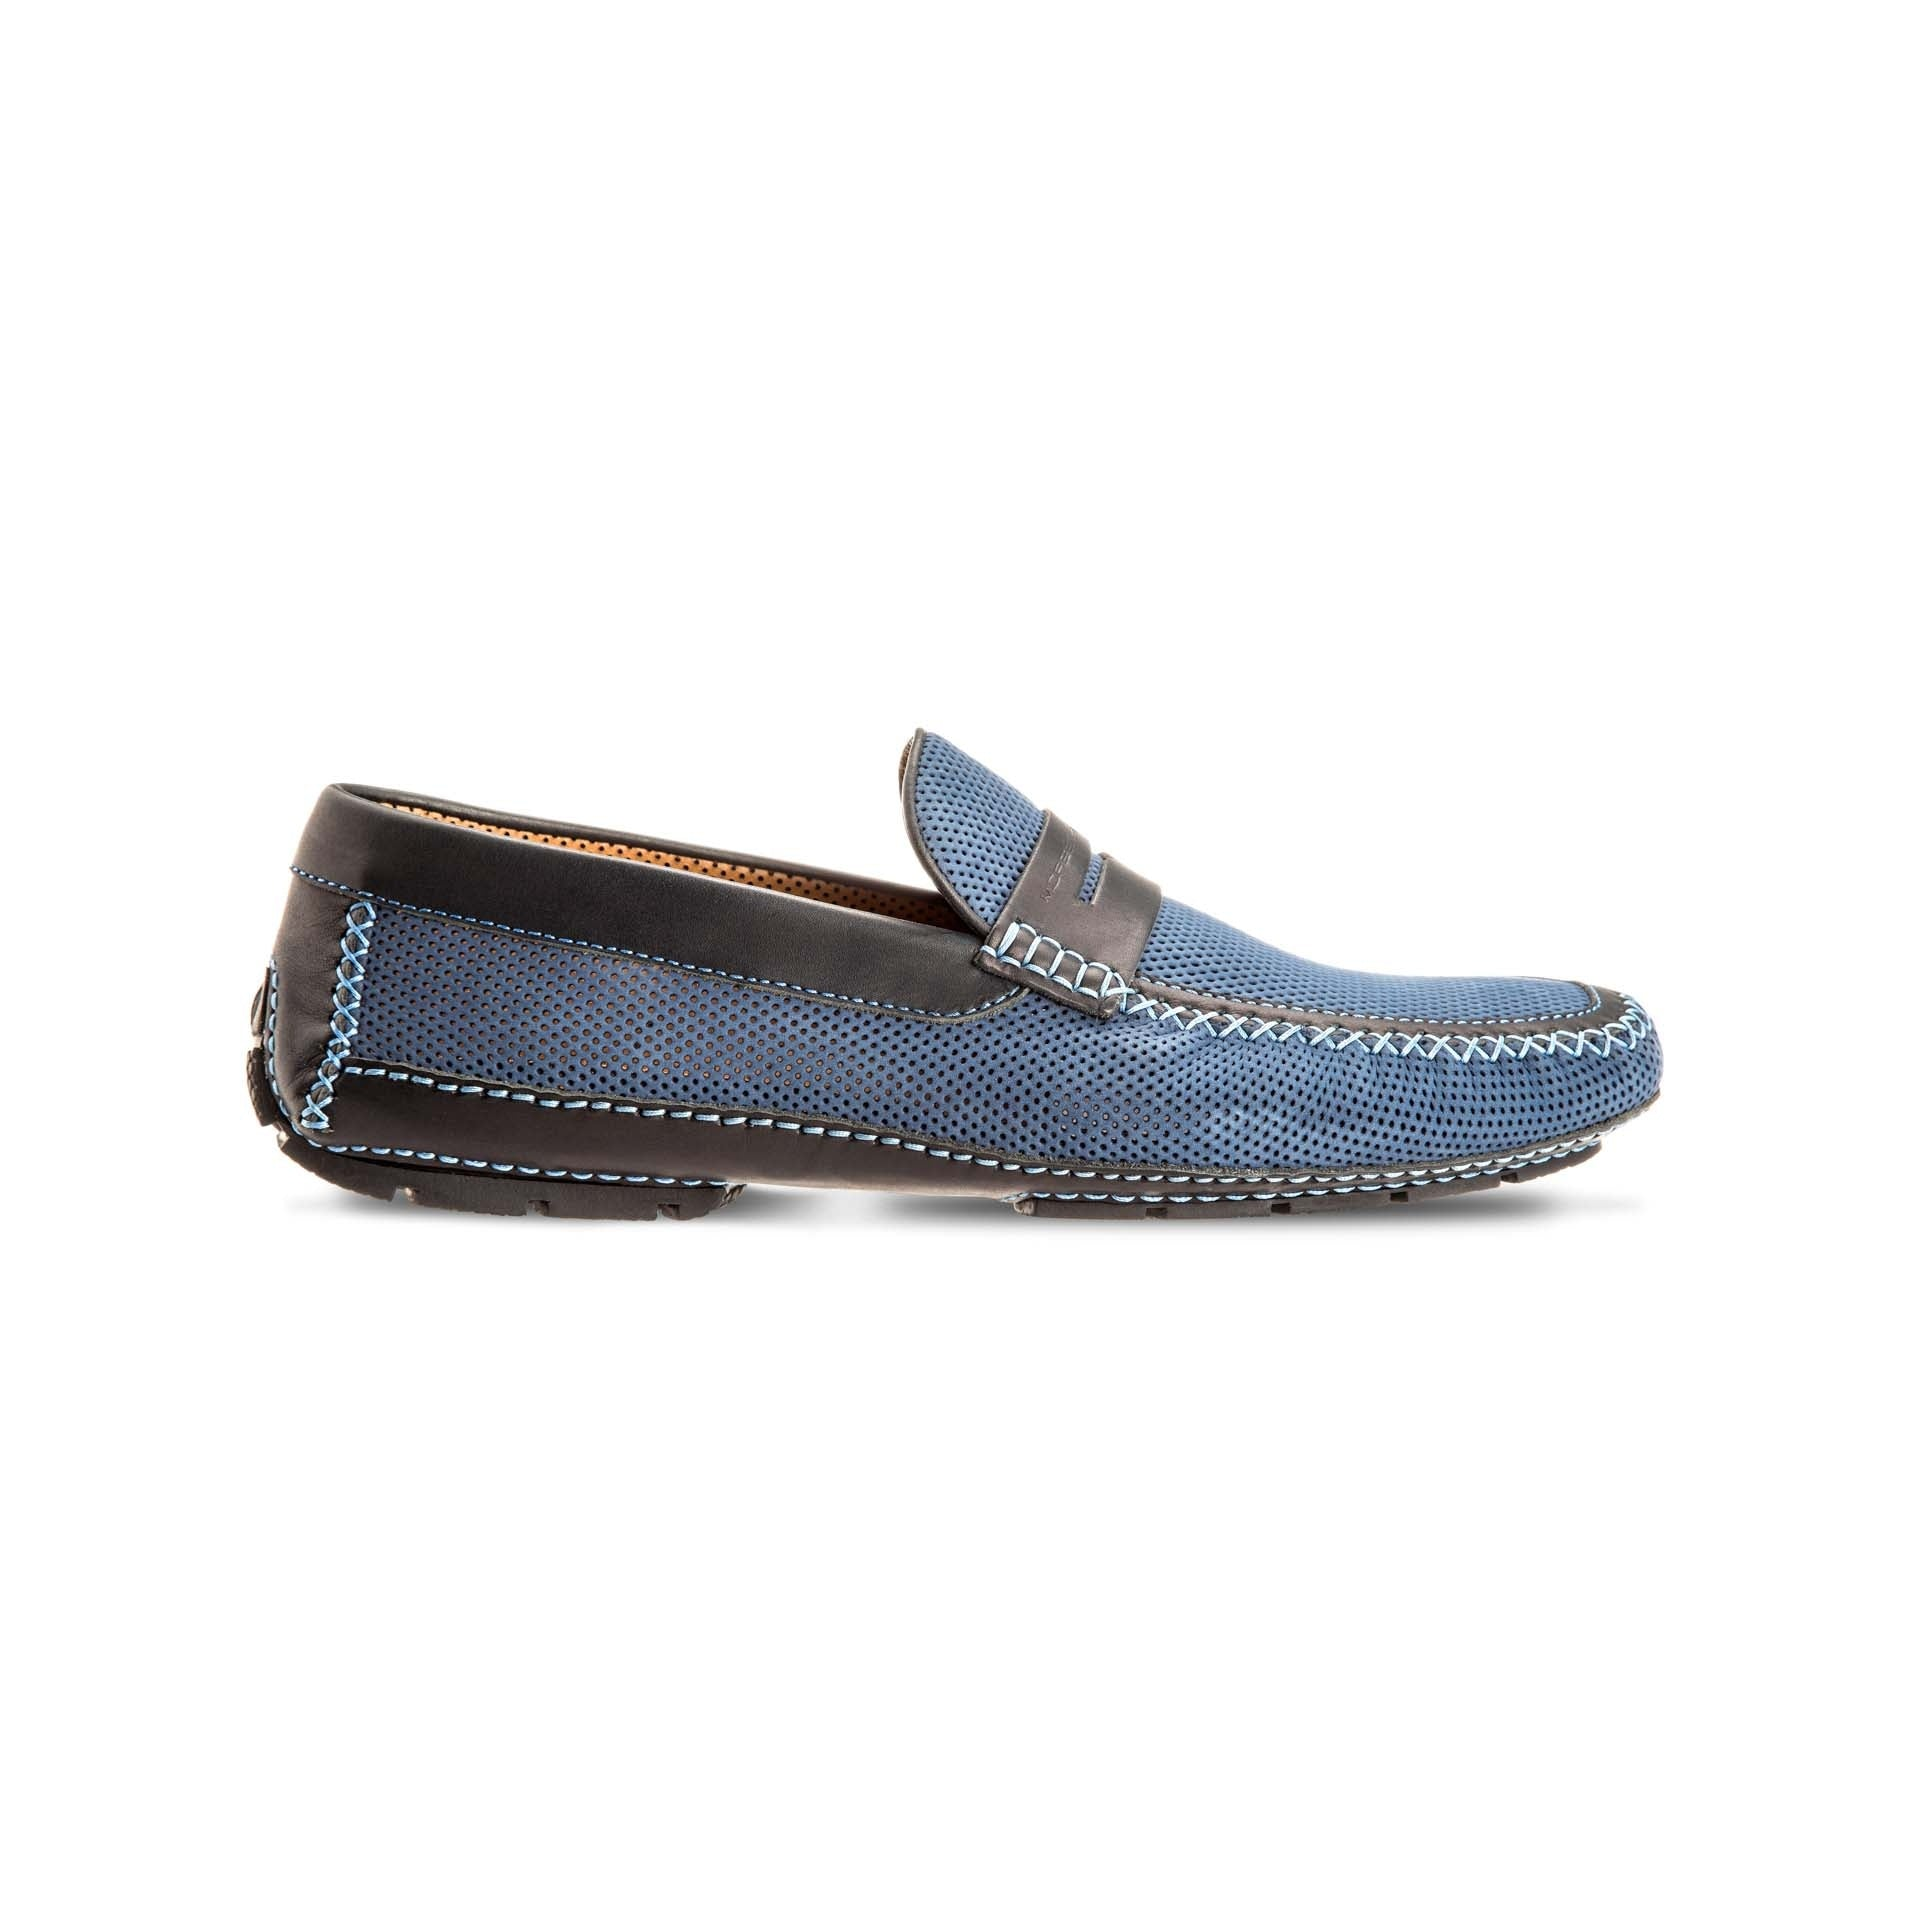 Light blue suede and perforated leather